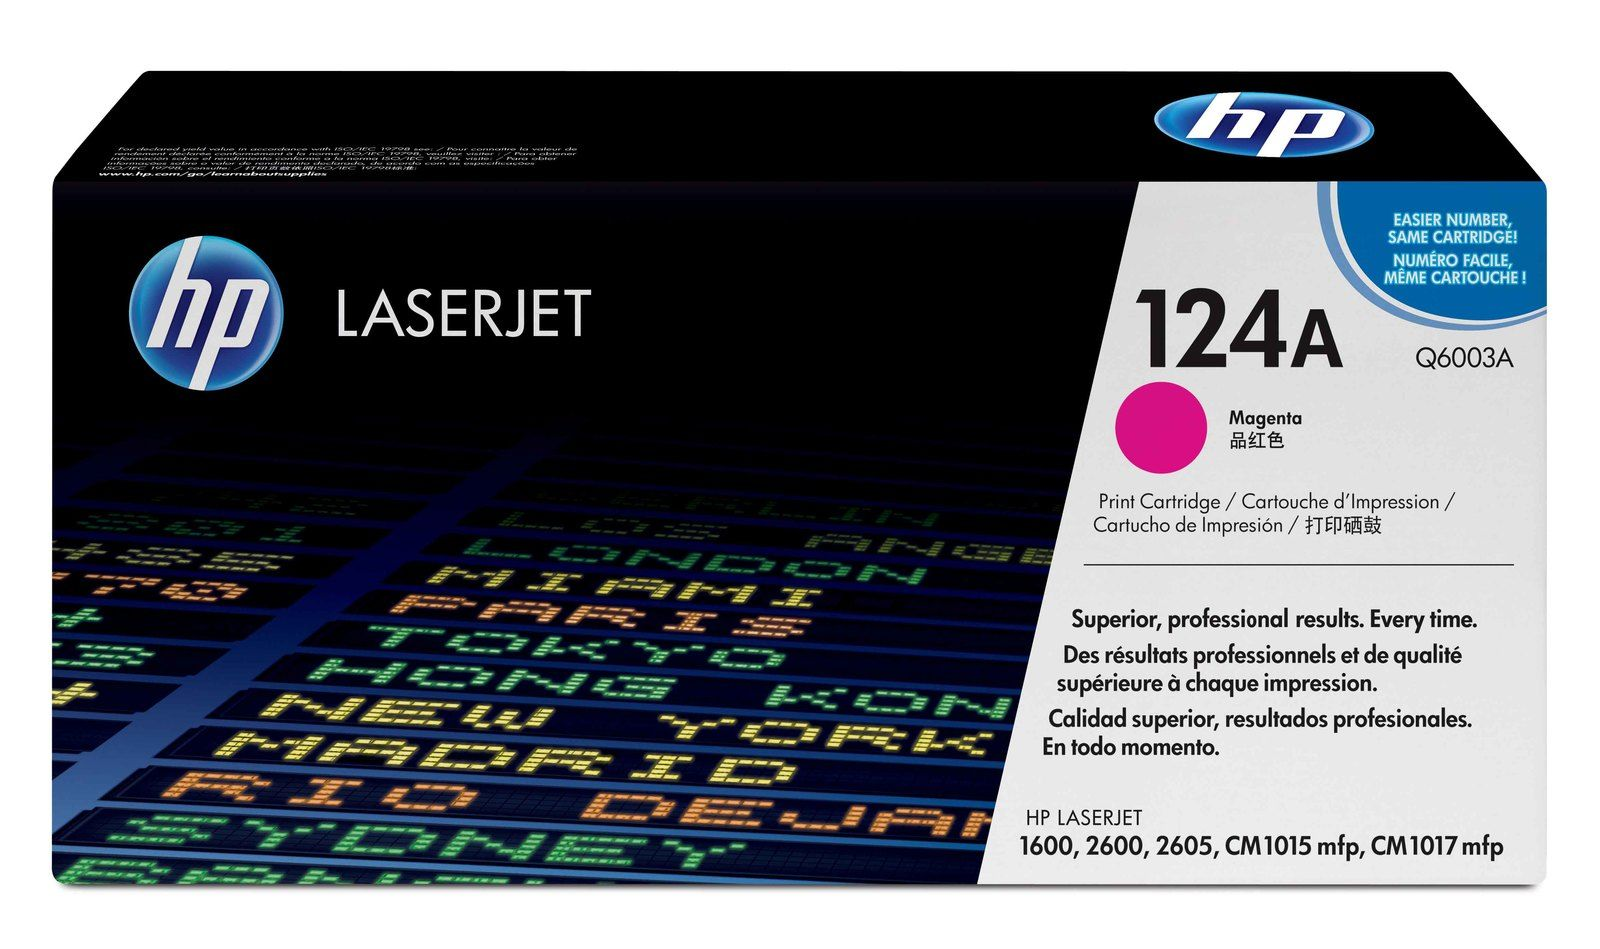 HP Q6003A Magenta Laser Toner Cartridge (124A)